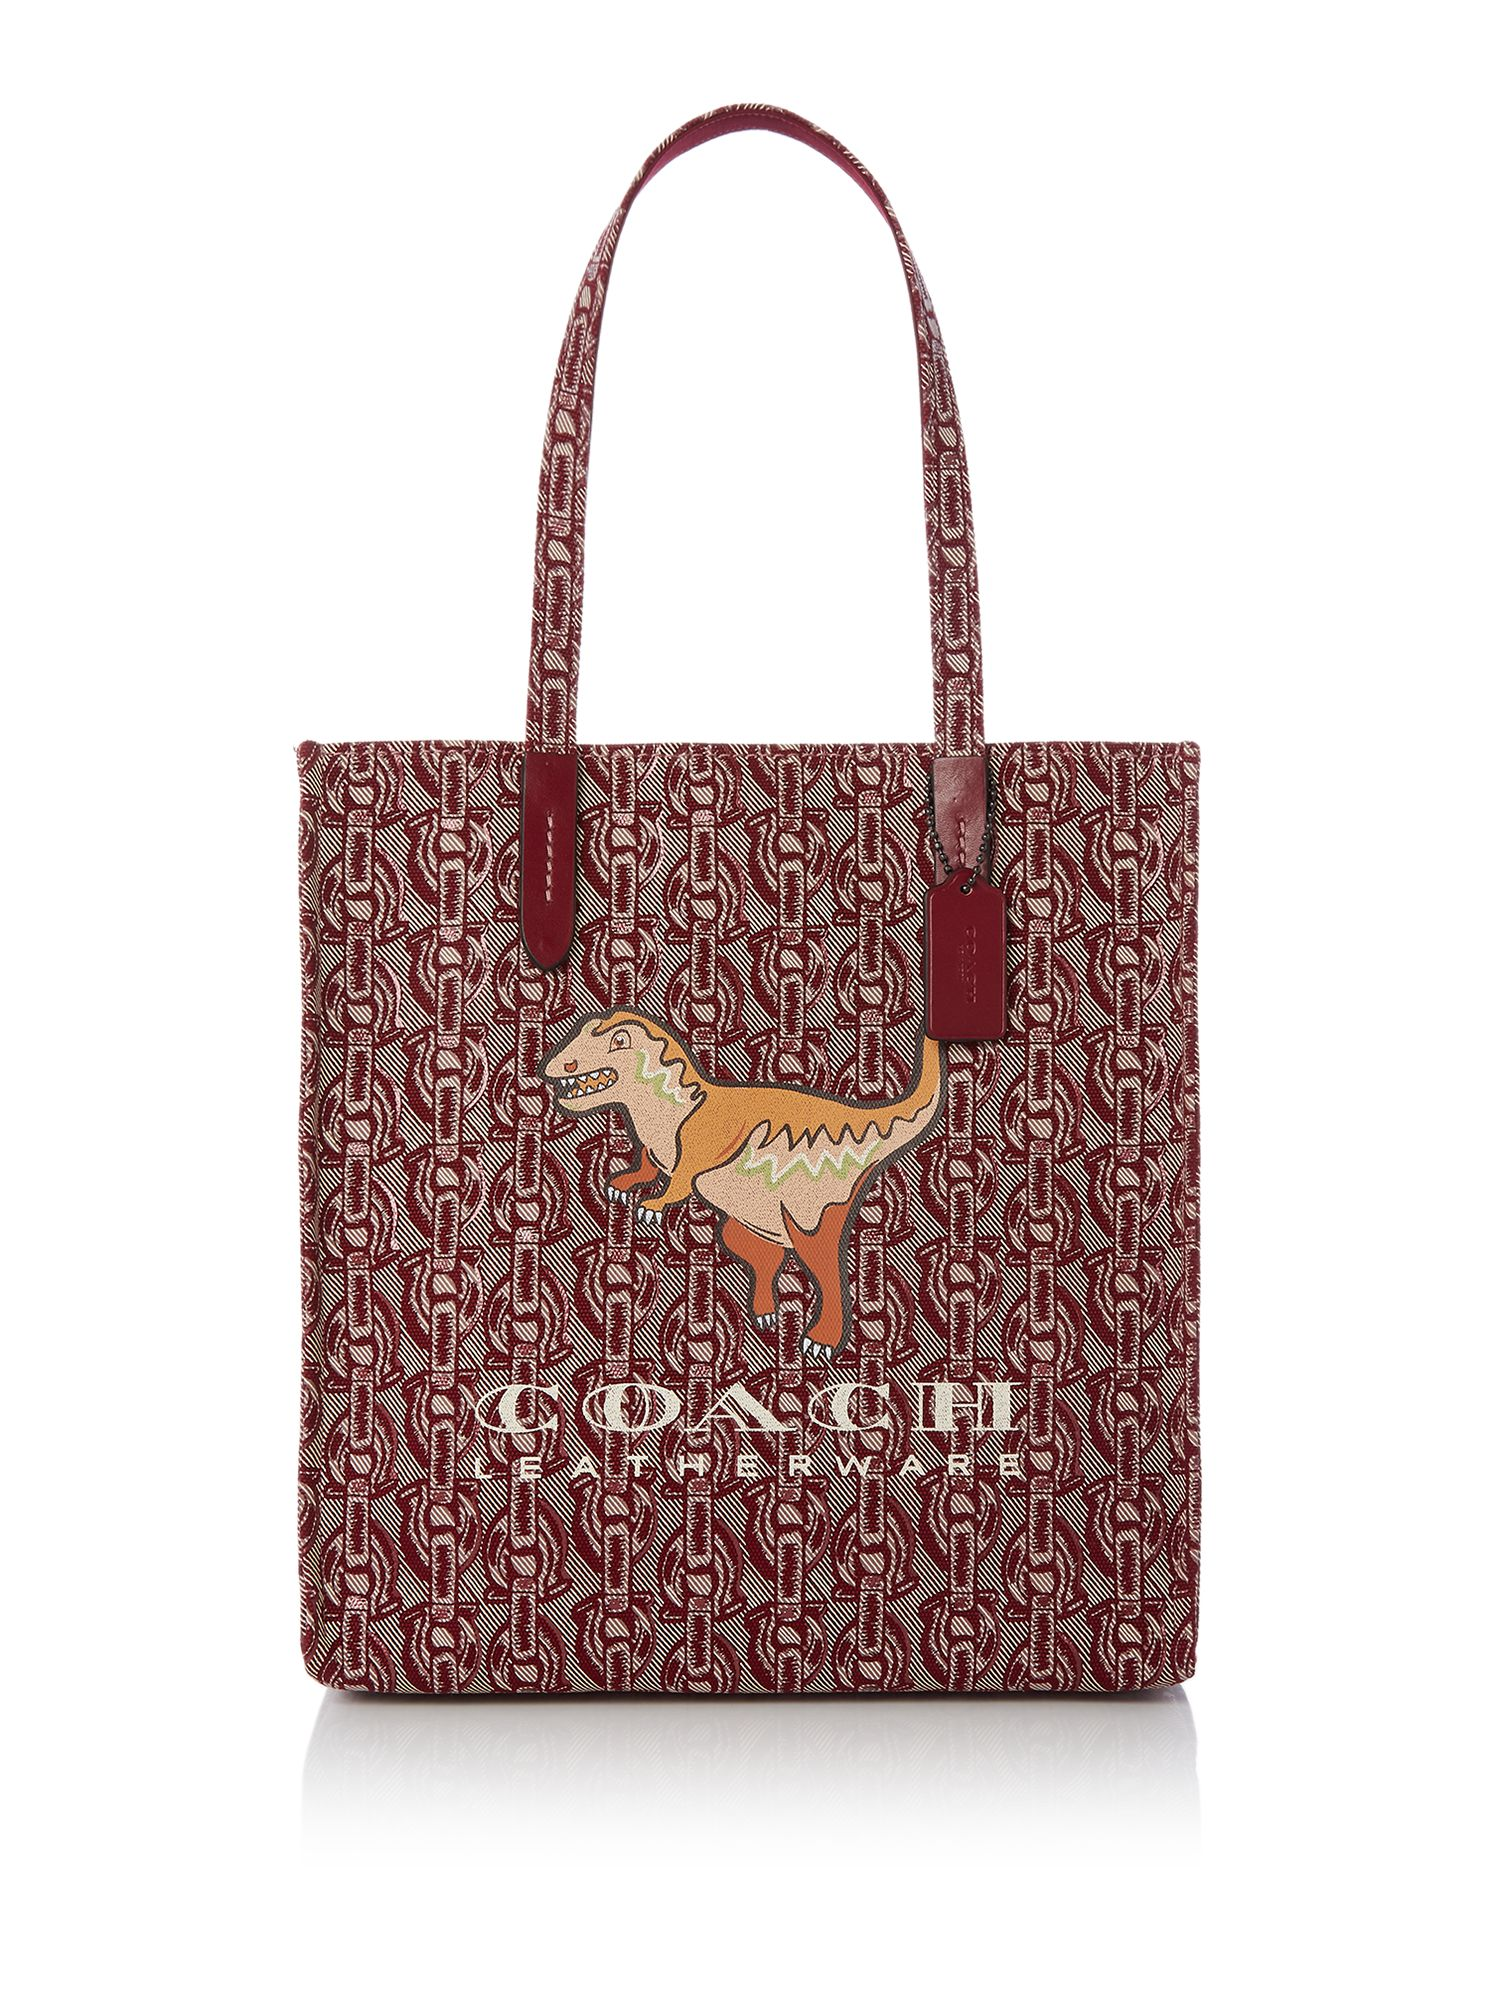 Coach 1941 canvas rexy tote, Red